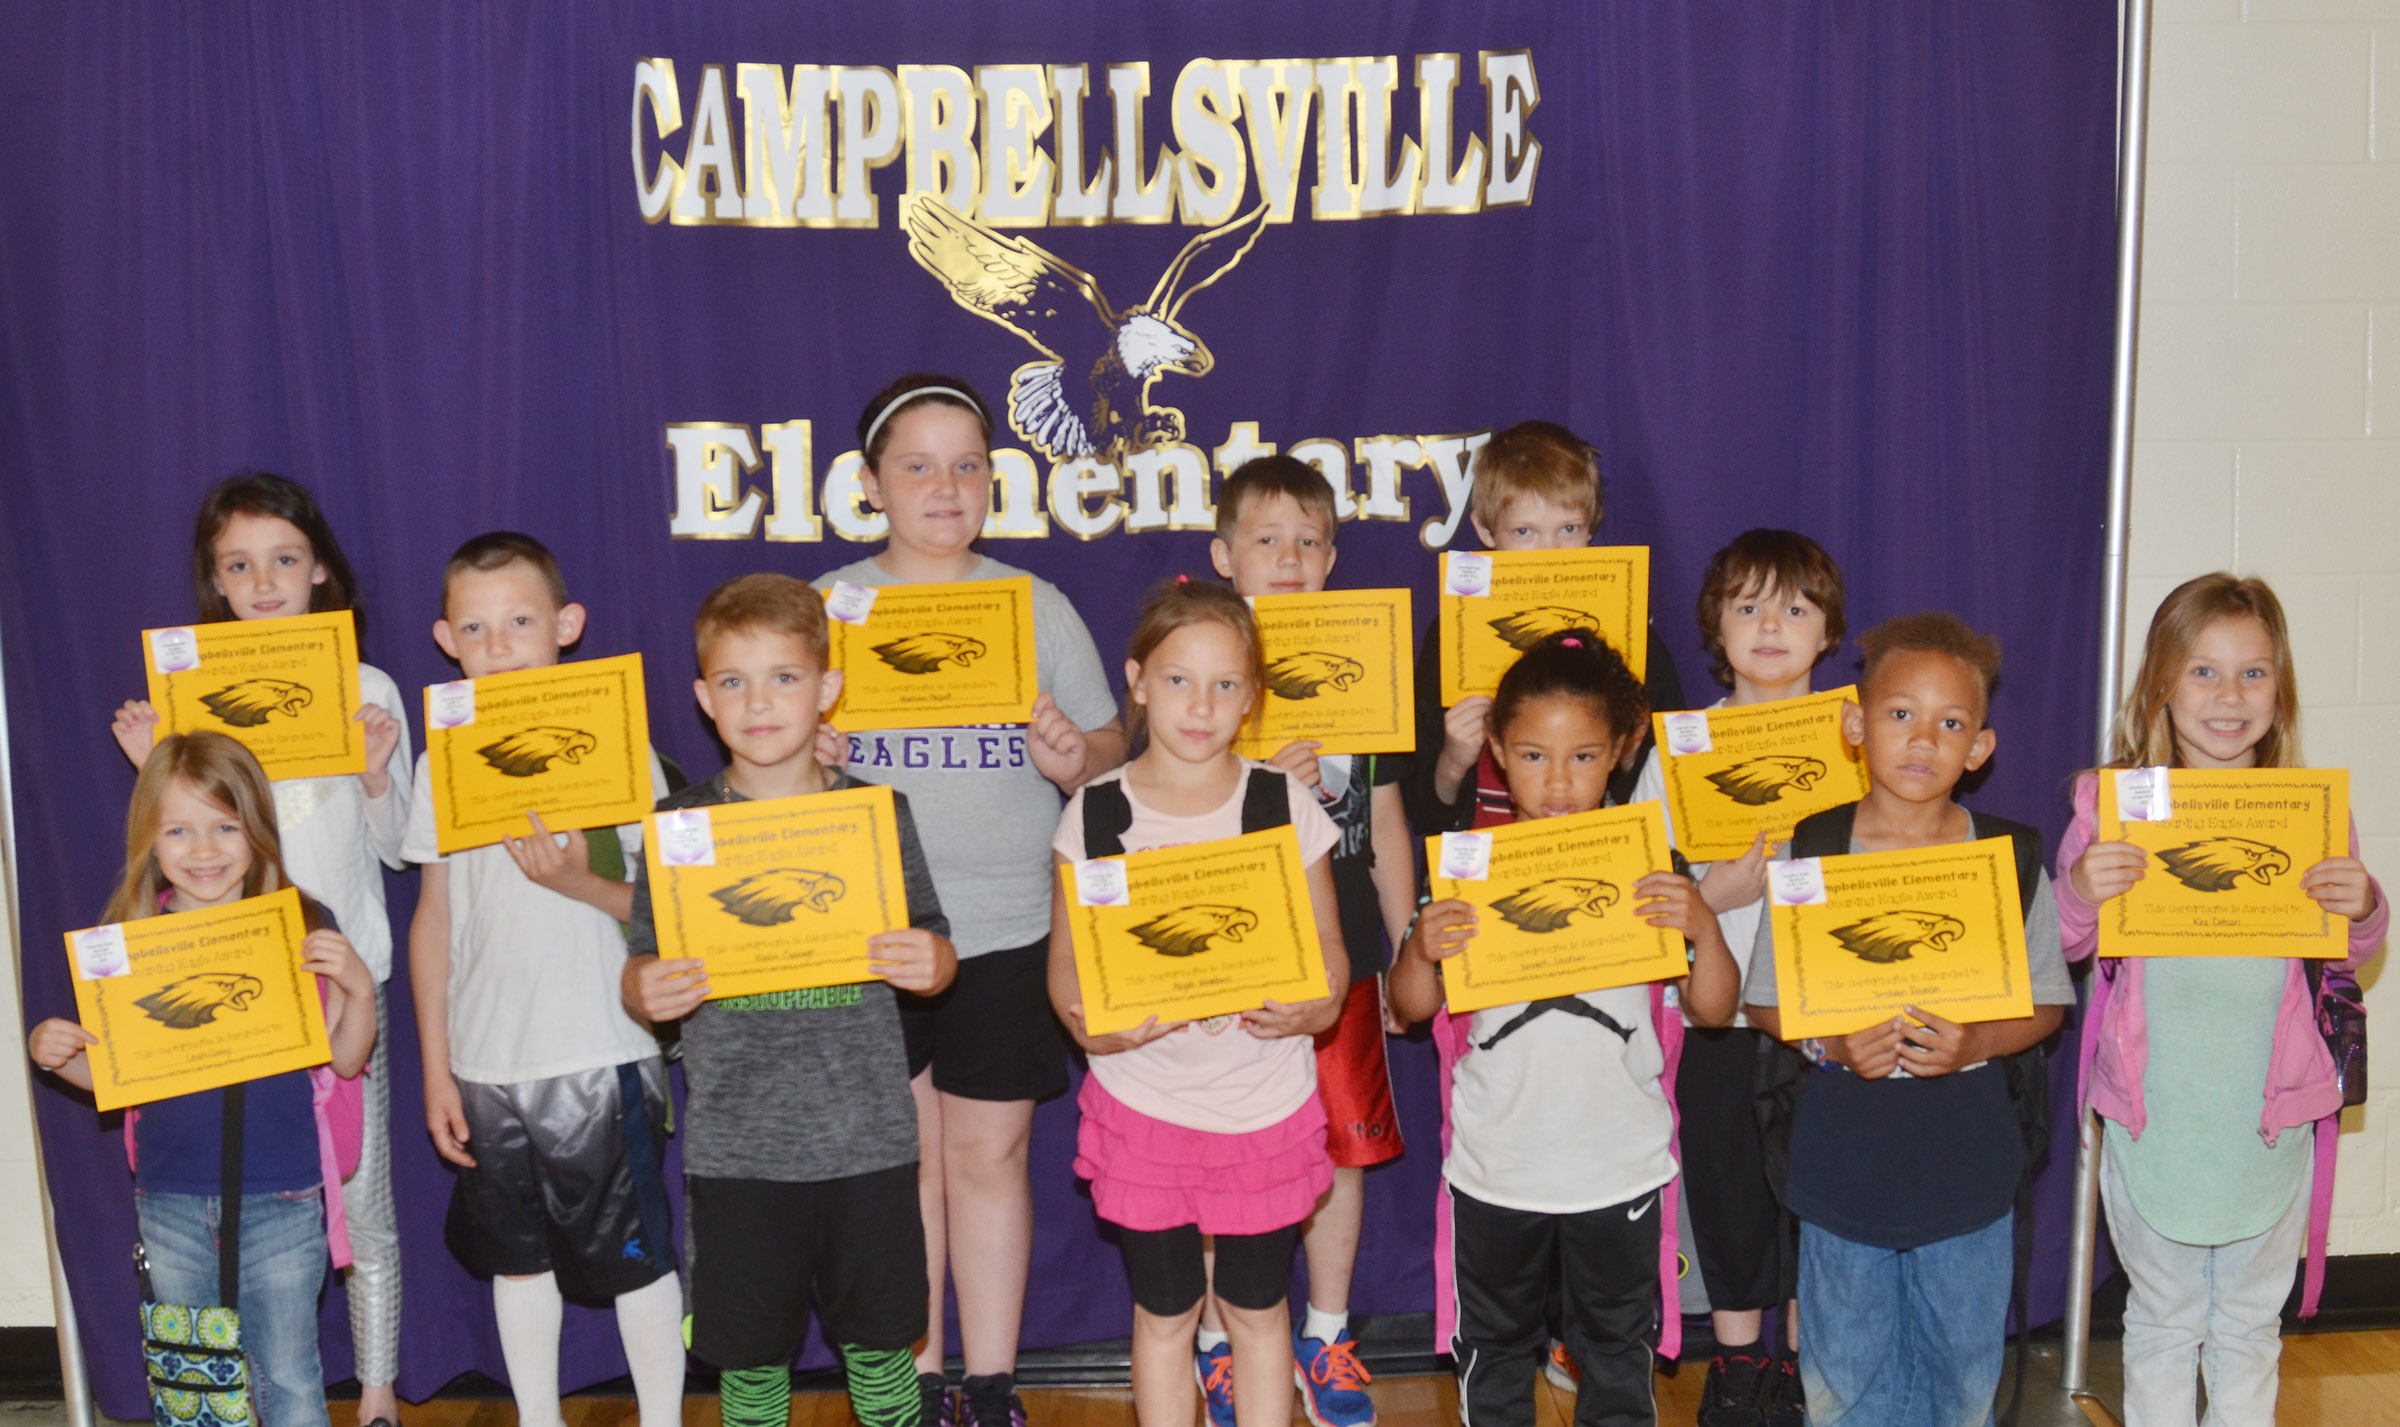 From left, front, are kindergartener Leah Covey, second-graders Kadin Coppage and Aliyah Meadows and kindergarteners Nevaeh Shofner, Treshaun Robinson and Kira Dotson. Back, third-graders Paige Ritchie, Cohutta Giles and Madison Philpott, second-grader David McFarland, third-grader Jon Releford and first-grader Caleb Ortiz. Absent from the photo are first-grader Kenady Hayes and second-grader Jazzlyn Cox.